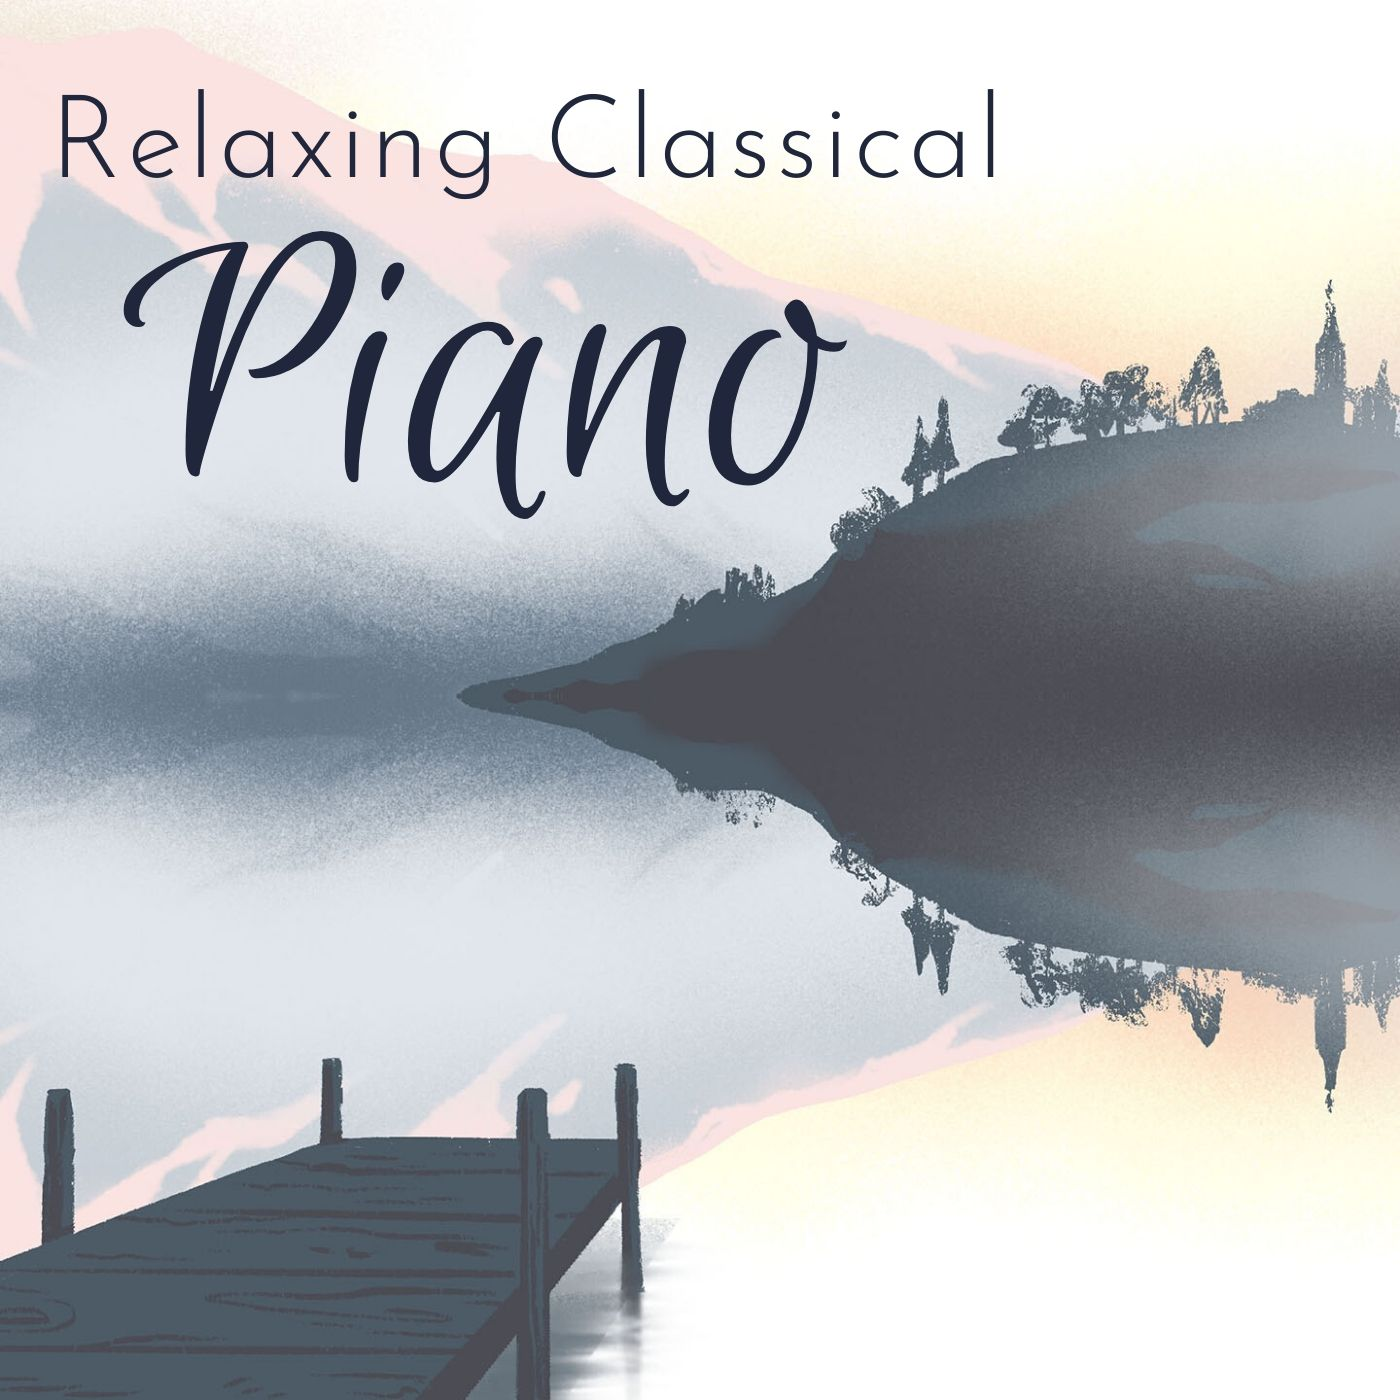 Peaceful, Relaxing Classical Piano